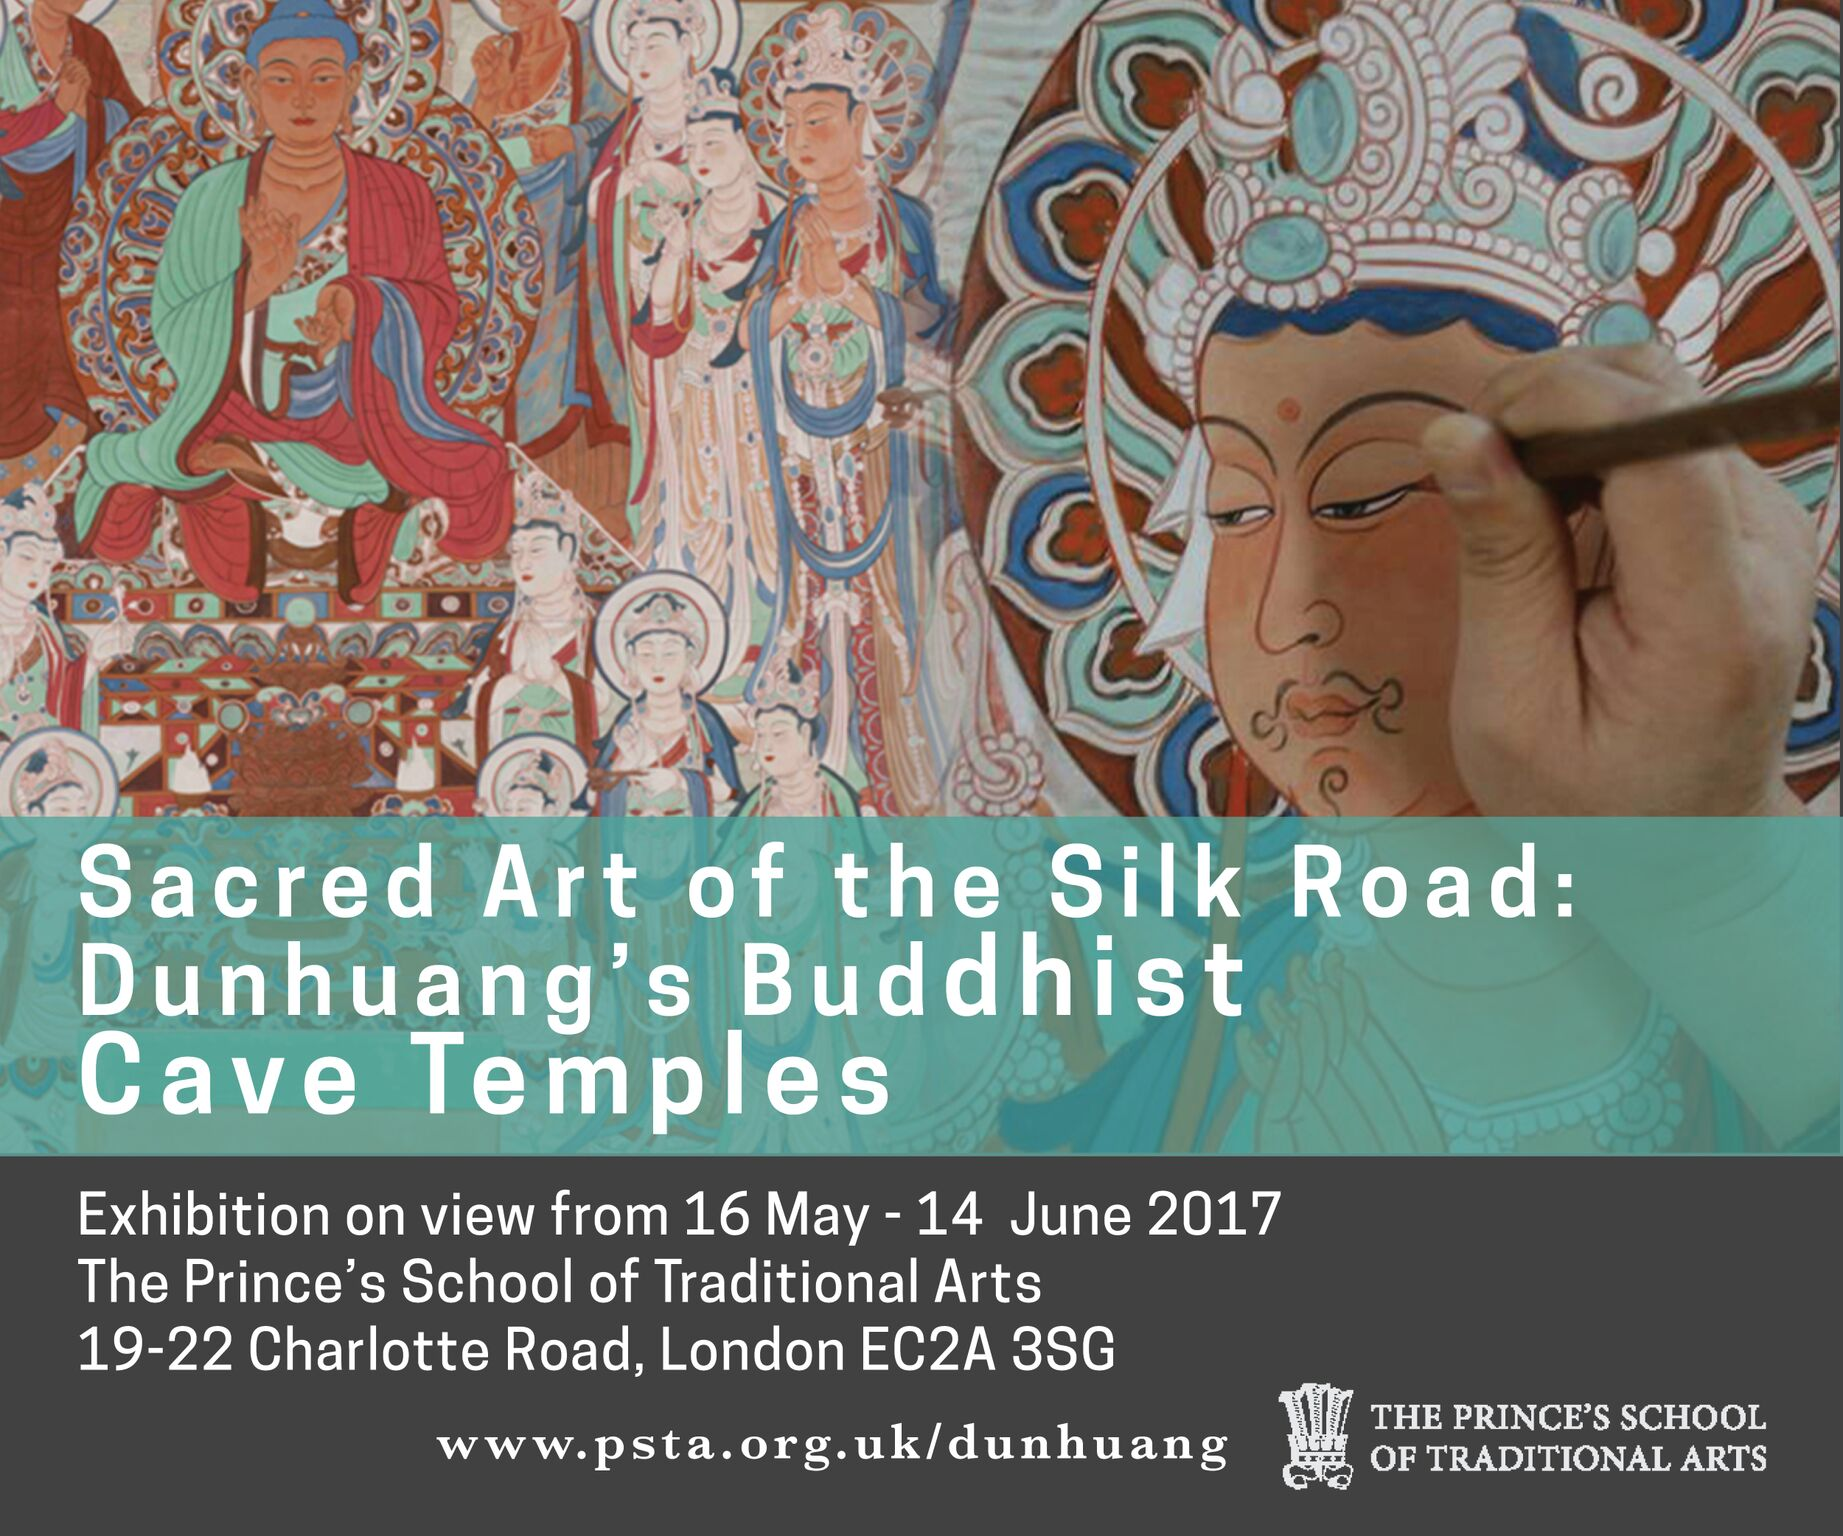 Sacred Art of the Silk Road: Dunhuang's Buddhist Cave Temples